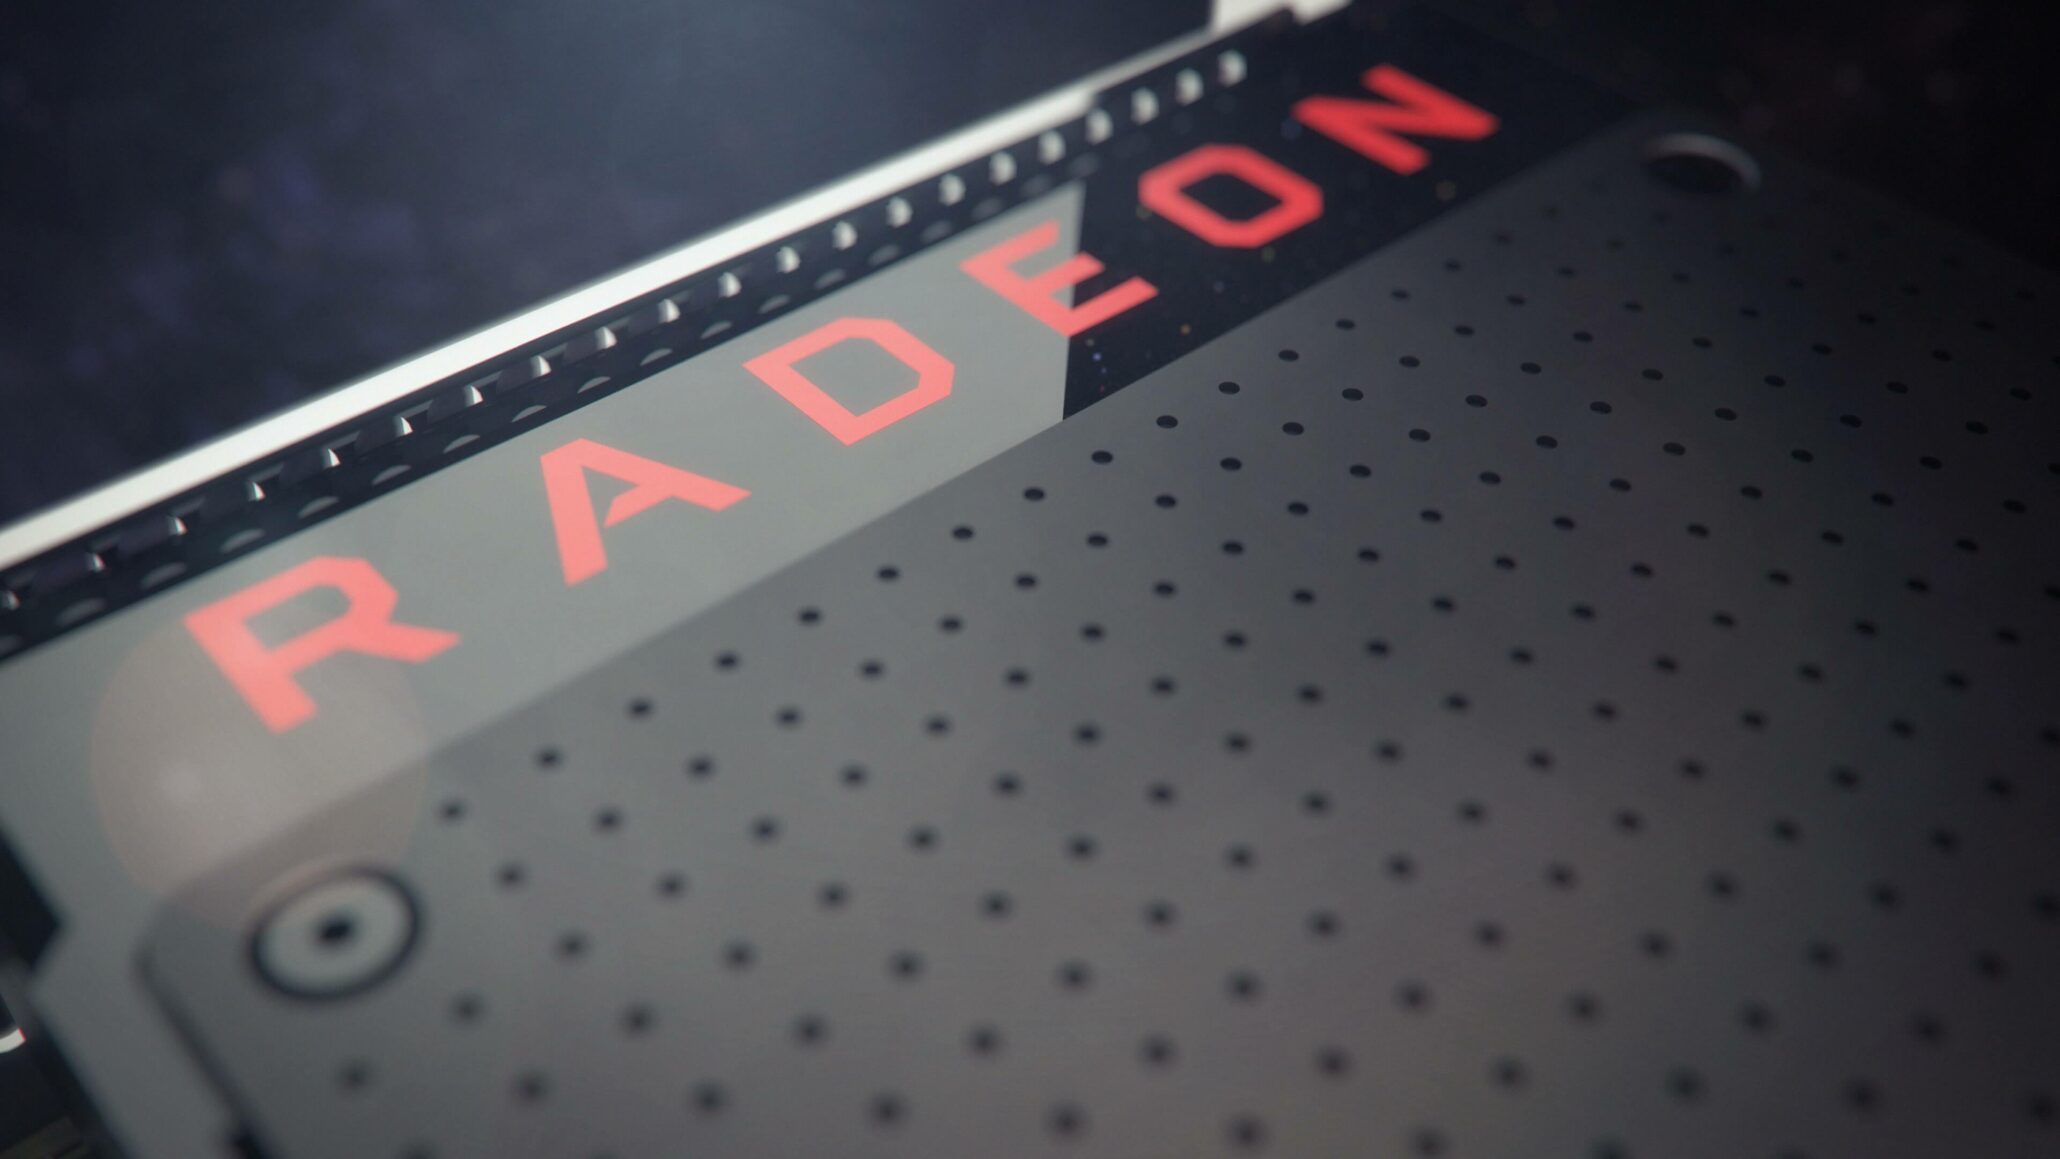 AMD's 16 7 1 Driver Boosts RX 480 Performance & Reduces